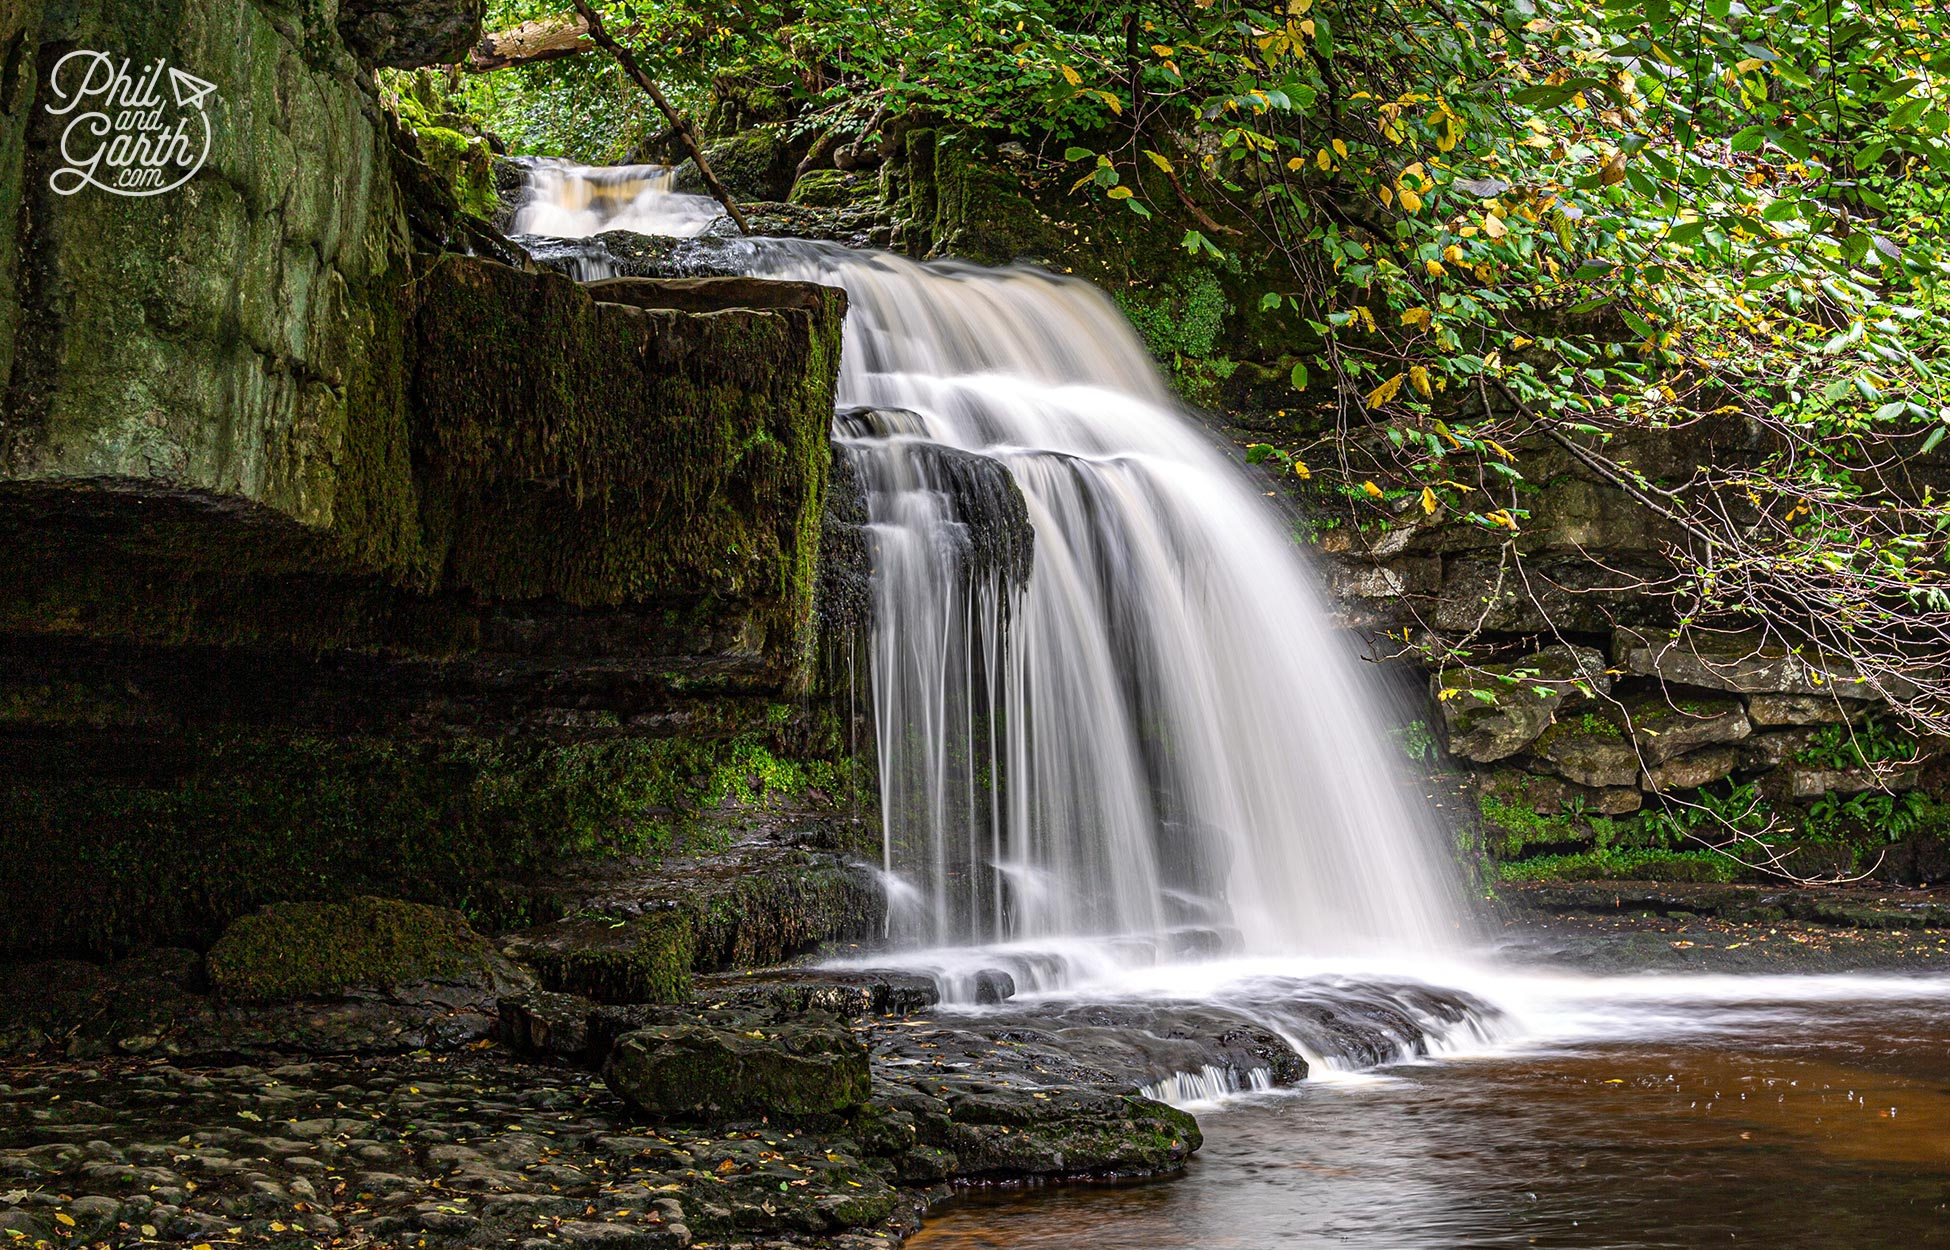 Cauldron Falls also known as West Burton Falls in the Yorkshire Dales